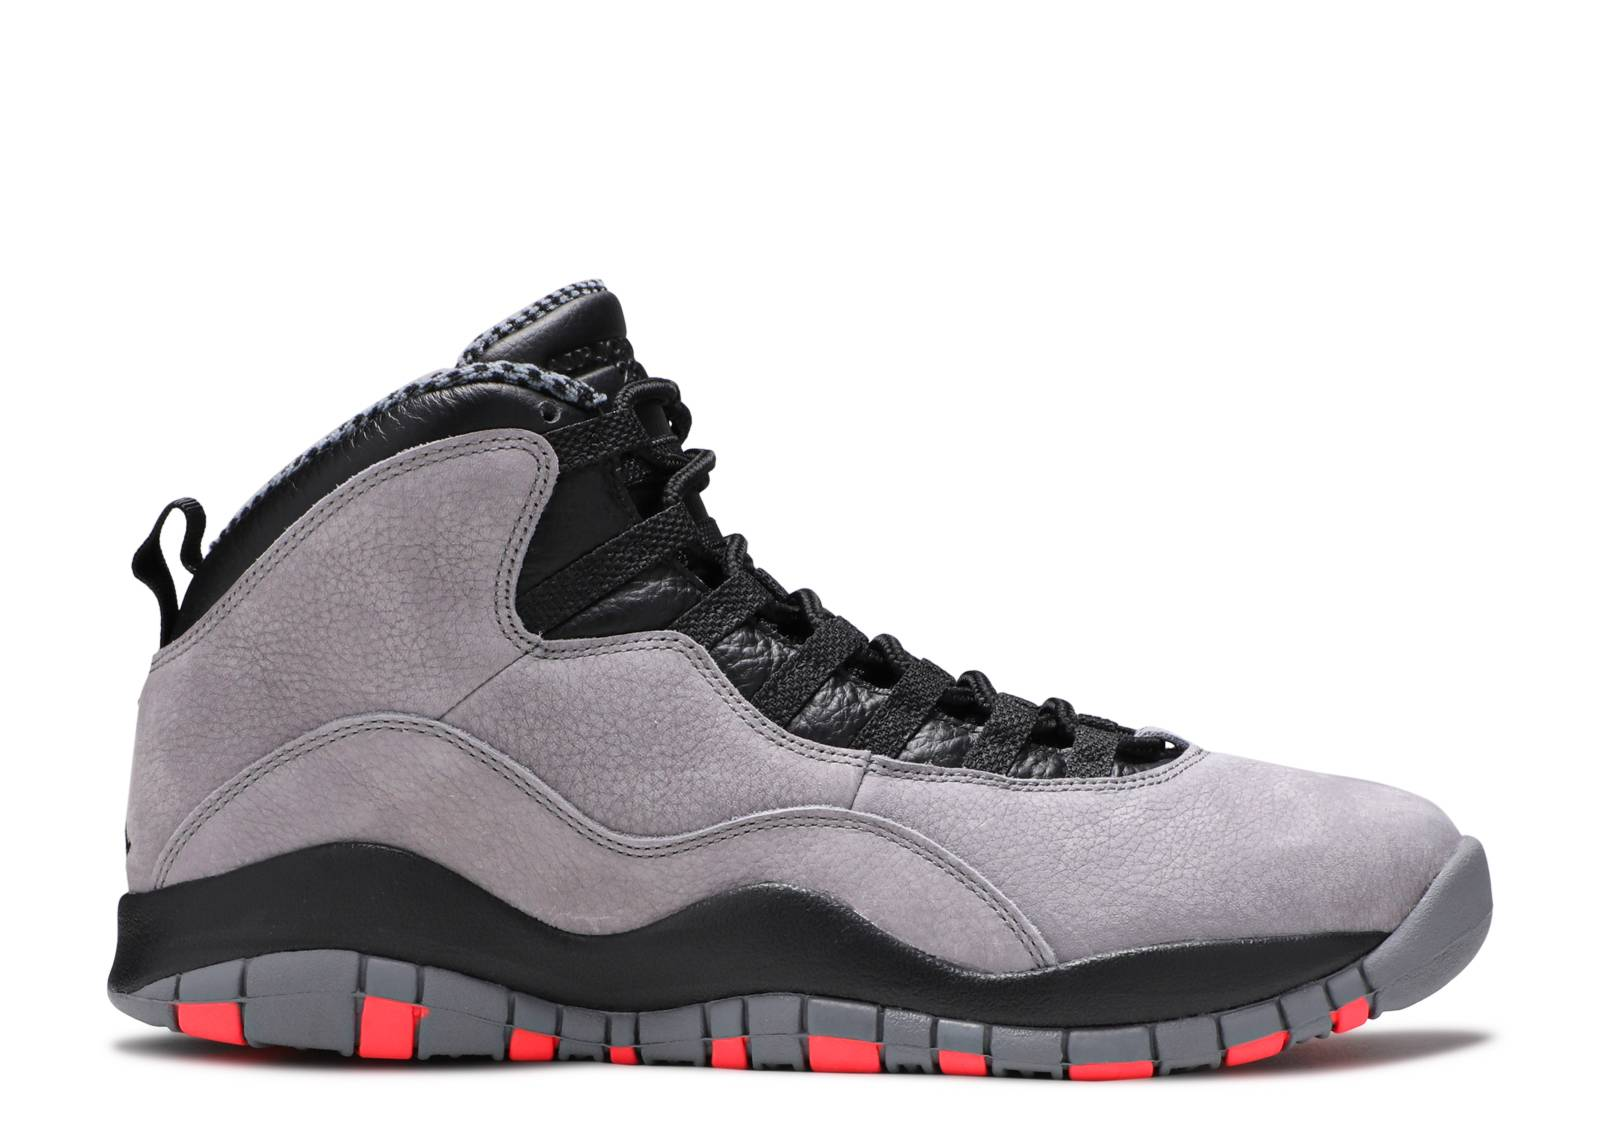 air jordan retro 10 white/black/true red/cool grey